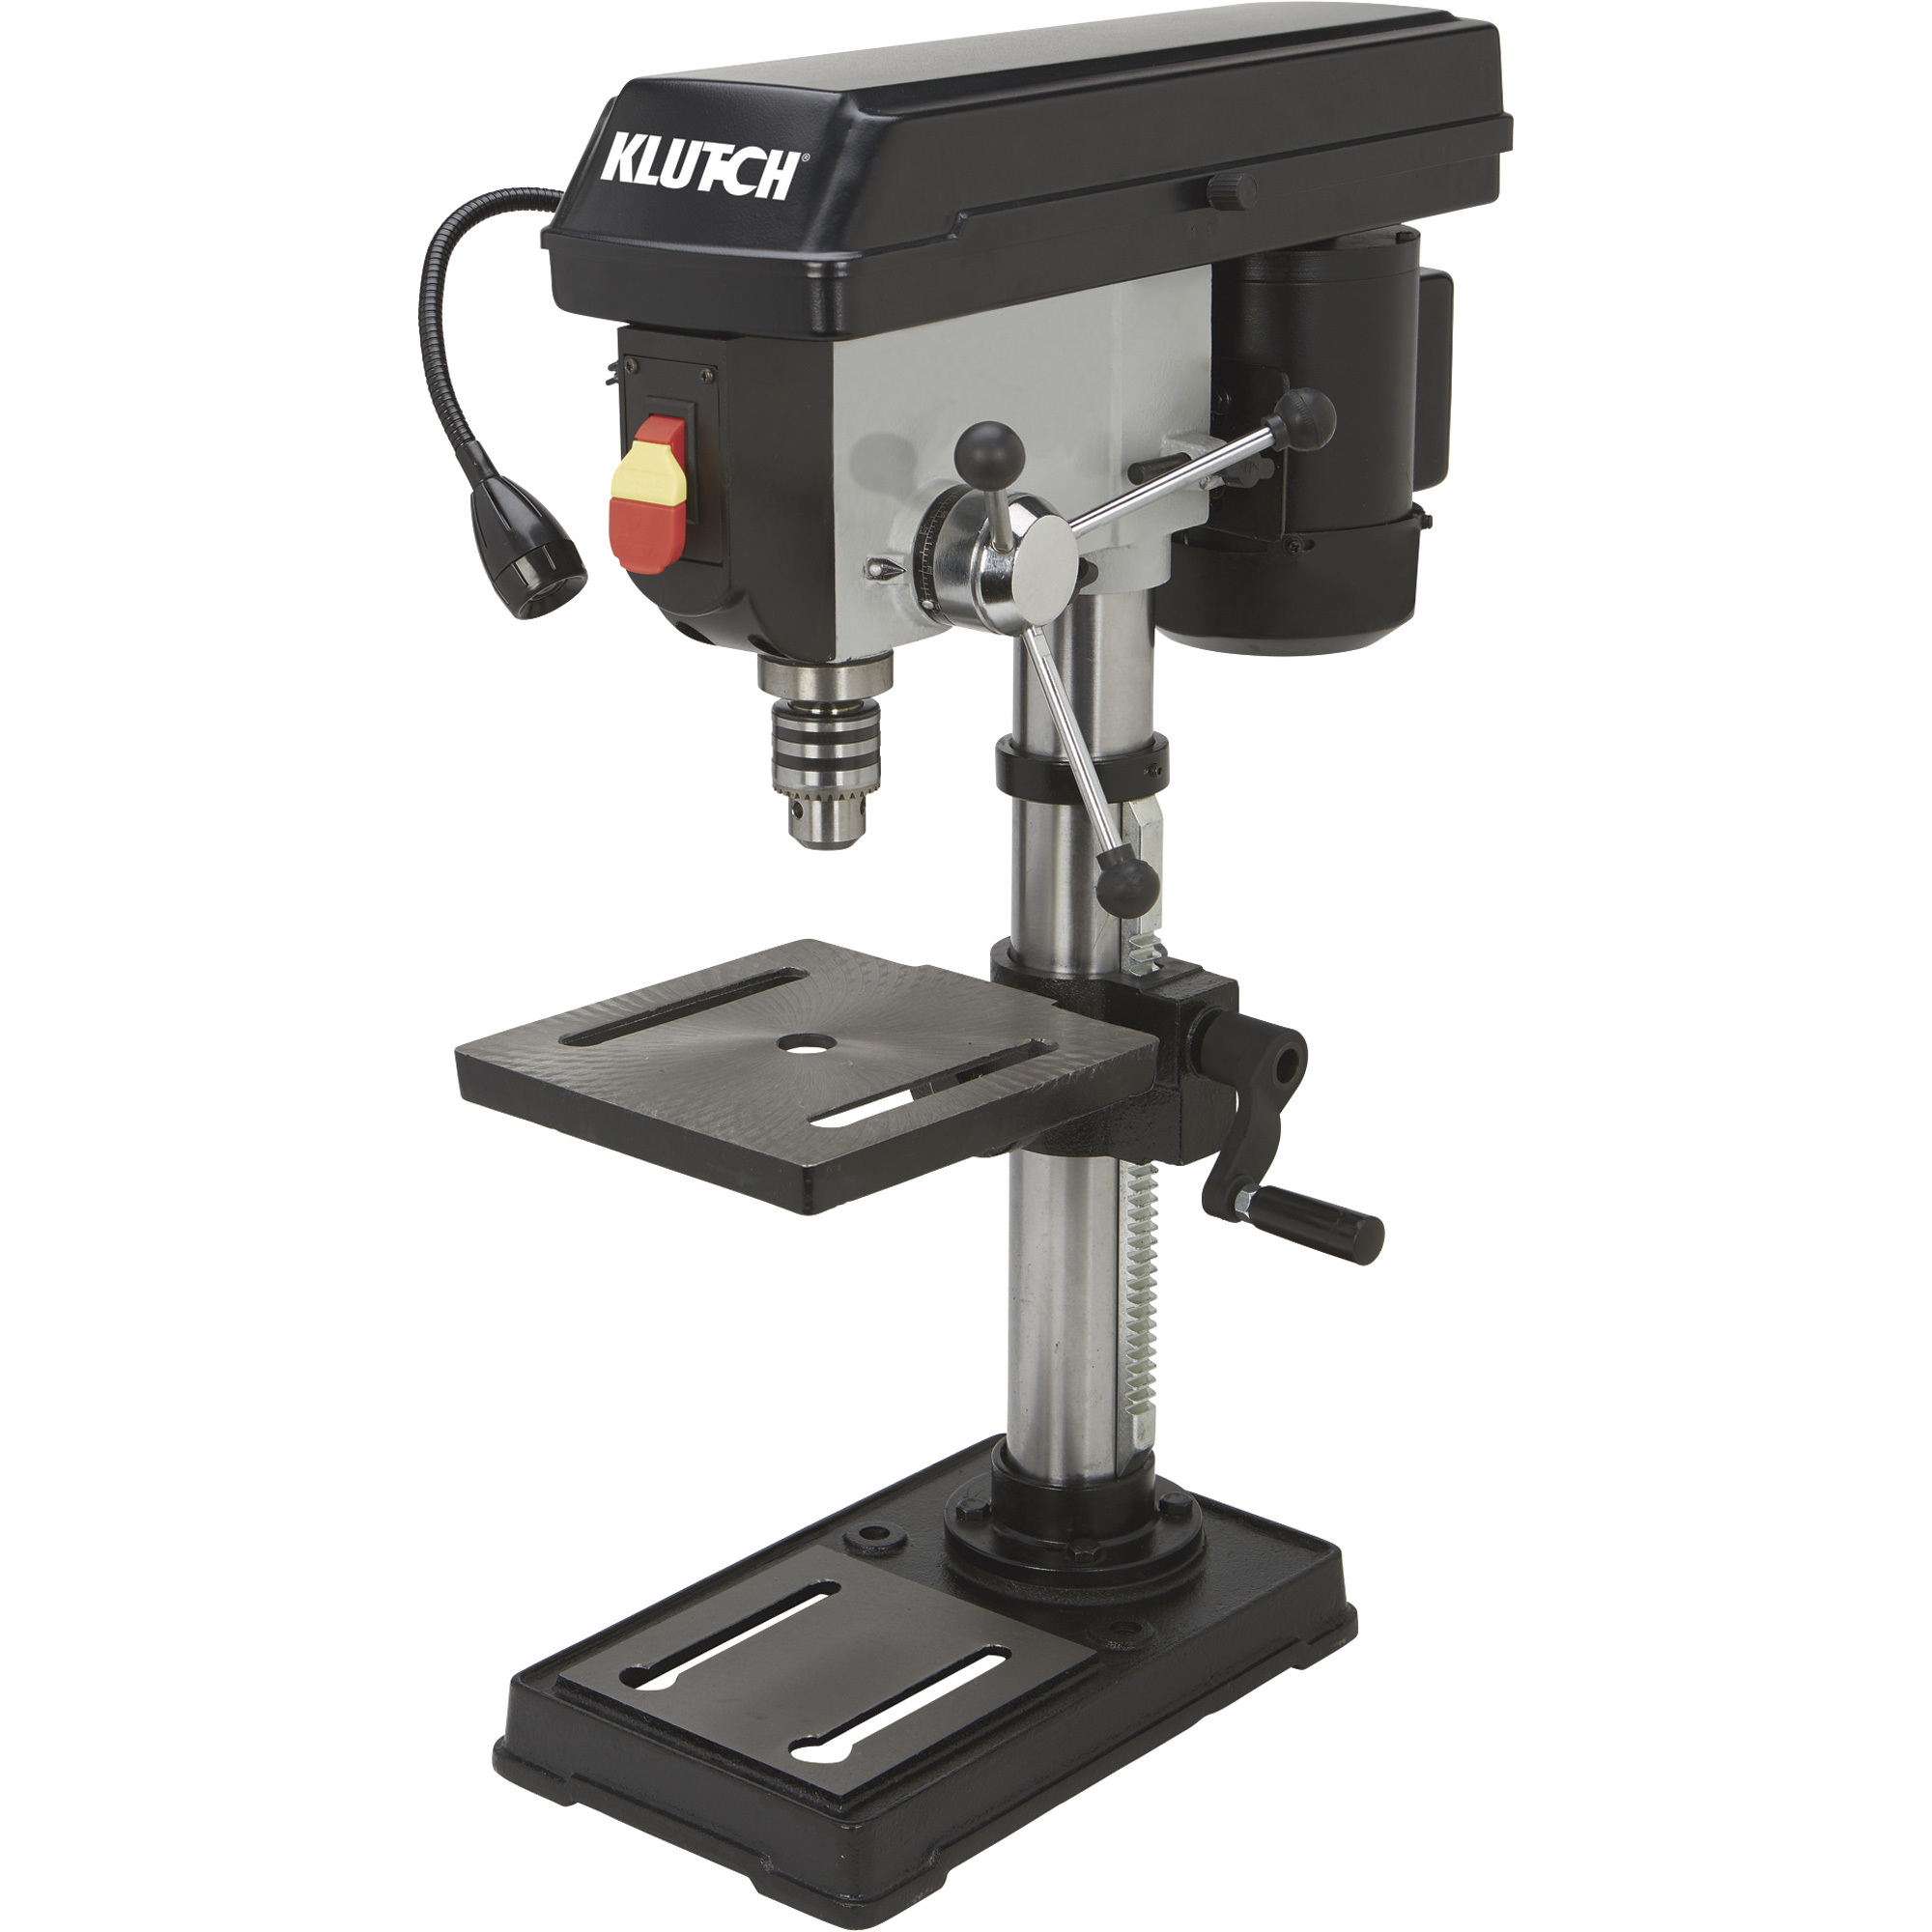 Image result for drill press